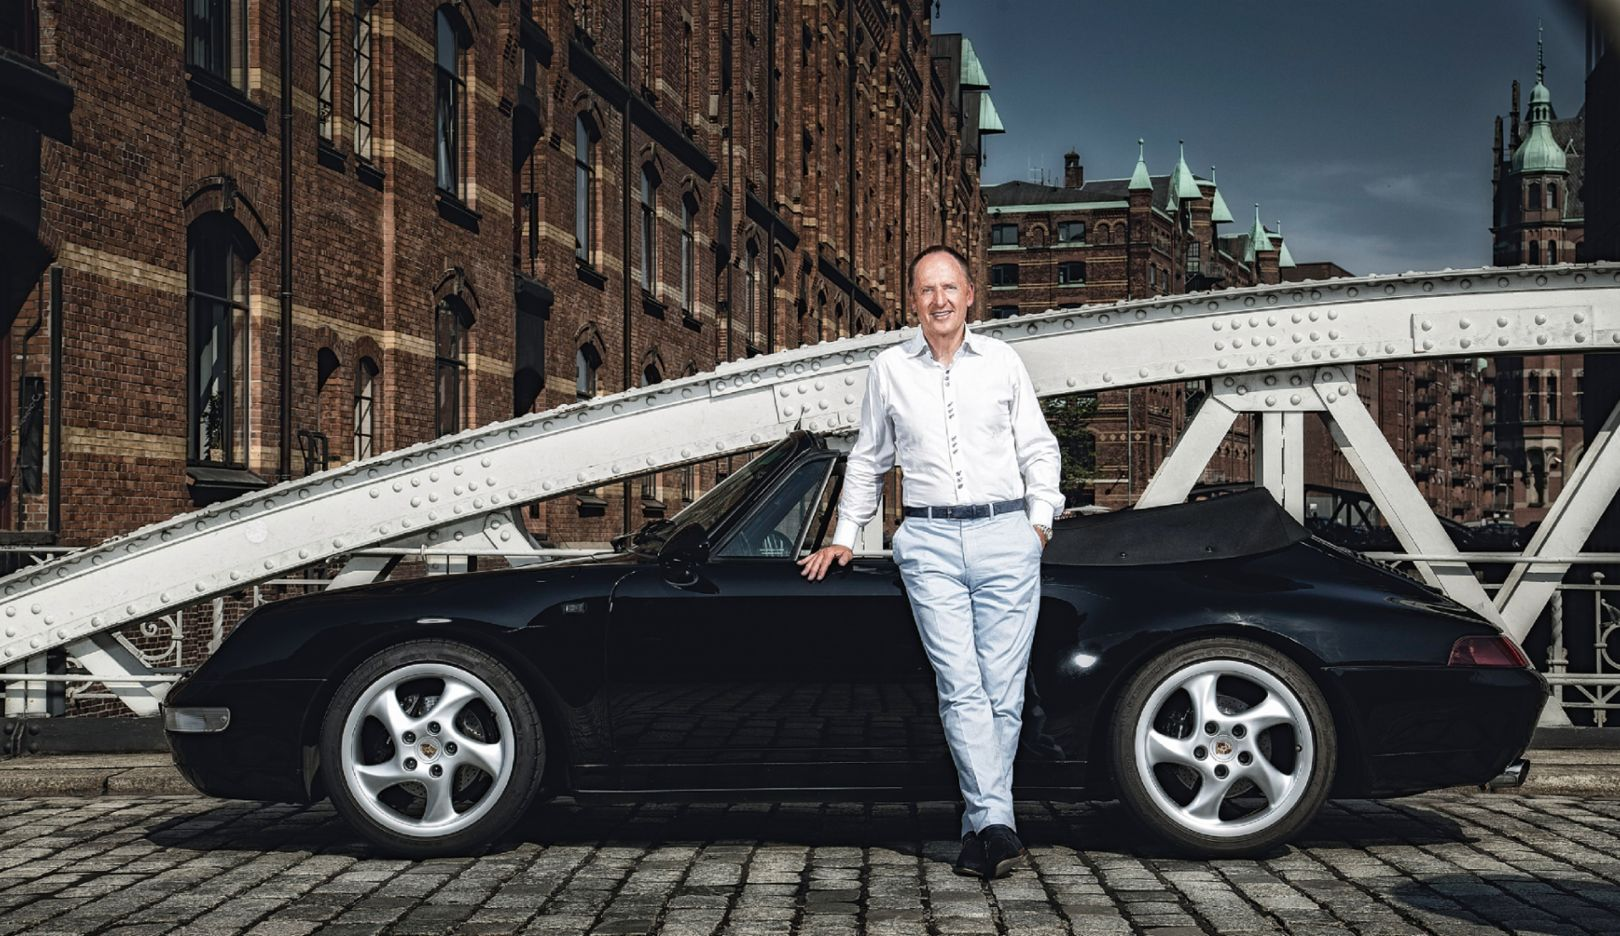 Karl J. Pojer, boss of Hapag-Lloyd Cruises and racing driver, Porsche 993 Cabriolet, Kannengiesserort-Brücke, Hamburg, Germany, 2016, Porsche AG